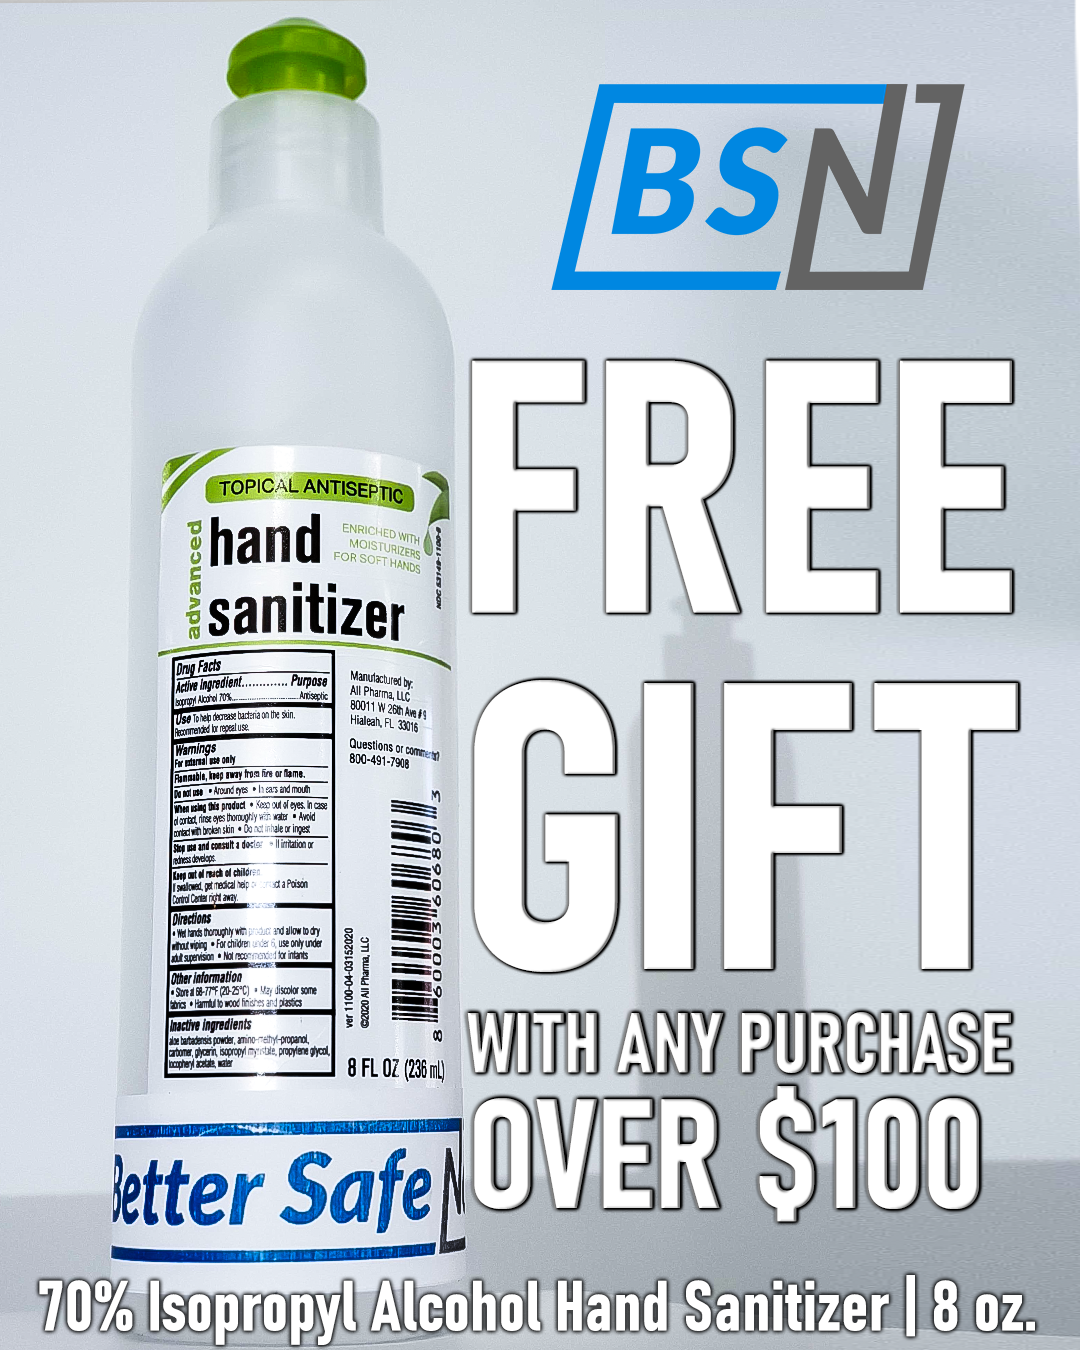 disposable-mask-hand-sanitizer-how-to-wear-a-mask-do-masks-work-masks-for-sale-bsn-better-safe-now